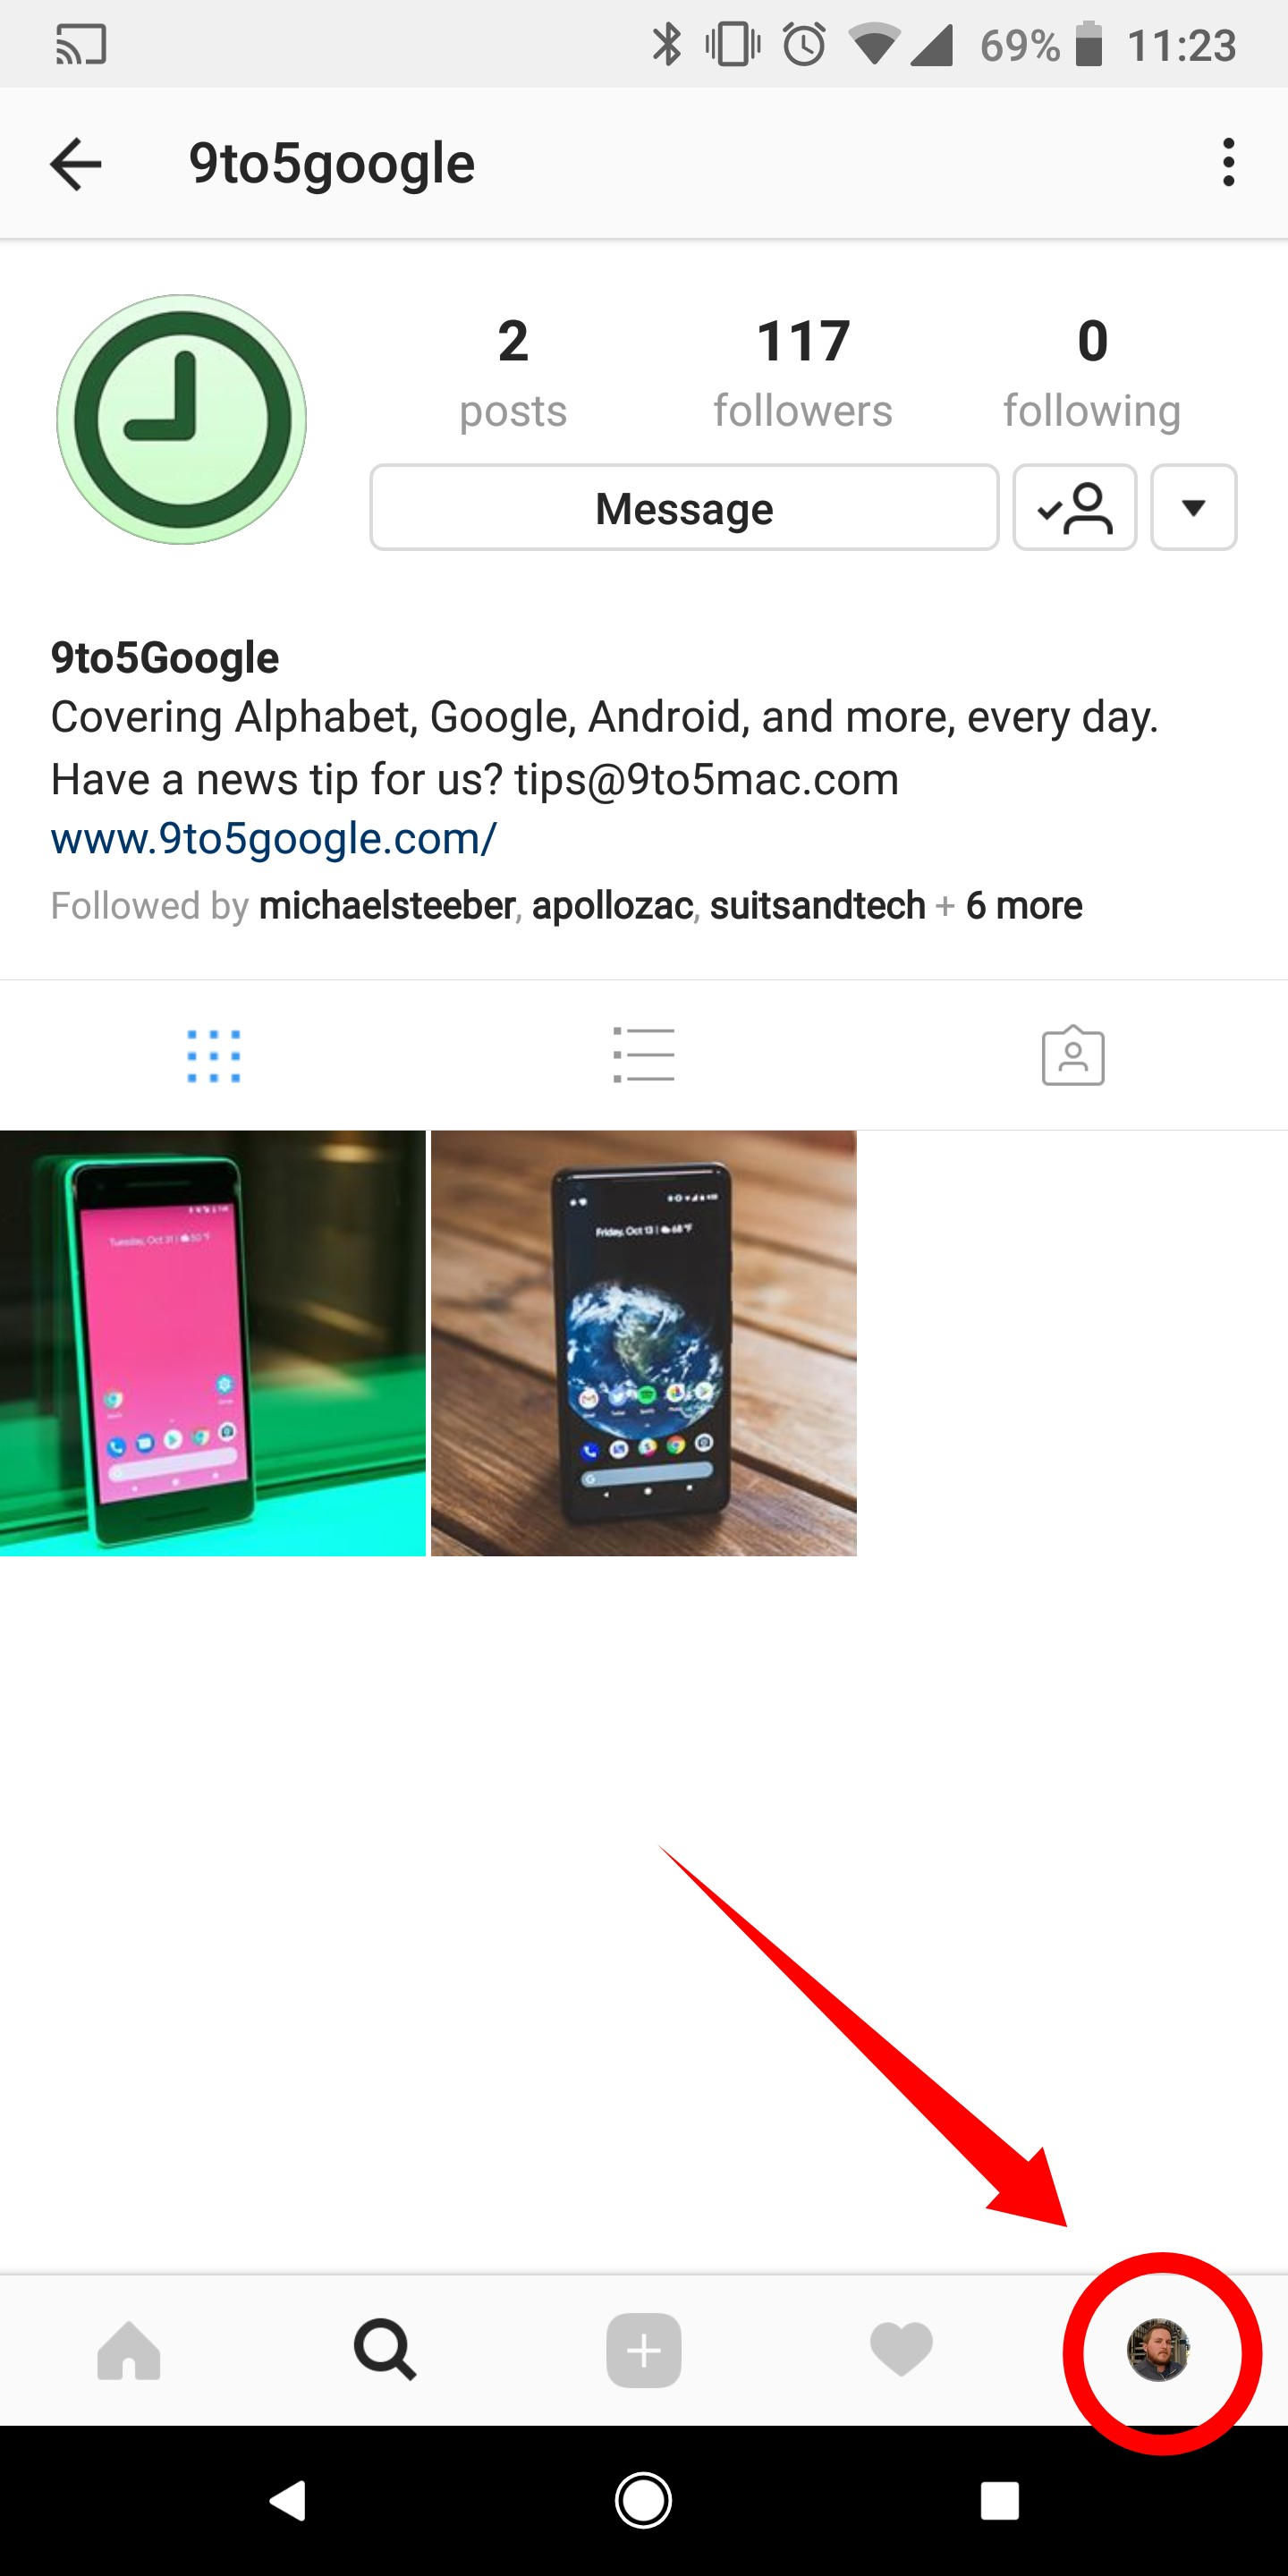 How to disable your activity status in Instagram - 9to5Google